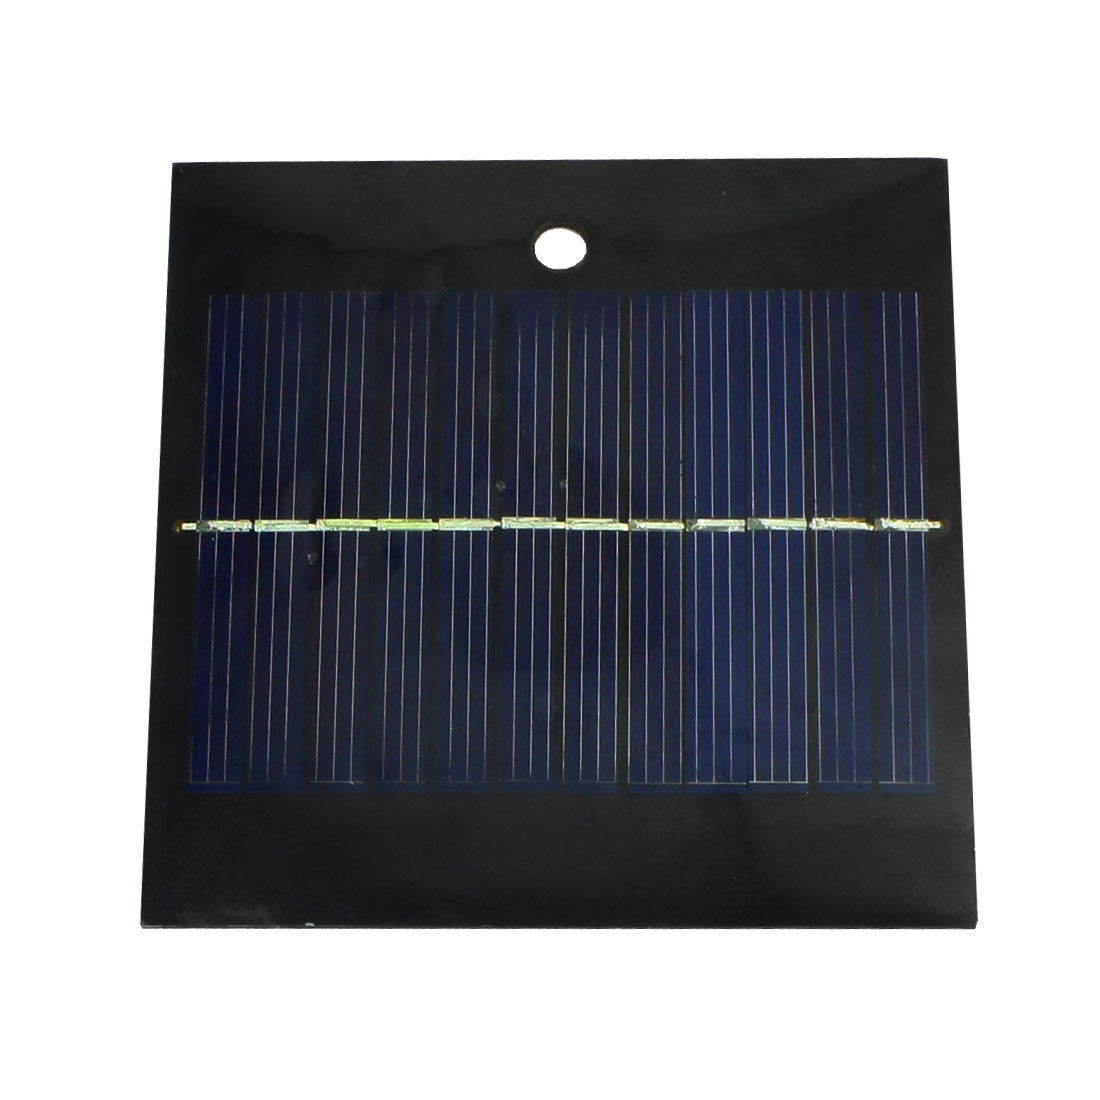 6V 240mA 120mm x 120mm Square Shape Solar Energy Conversion Panel